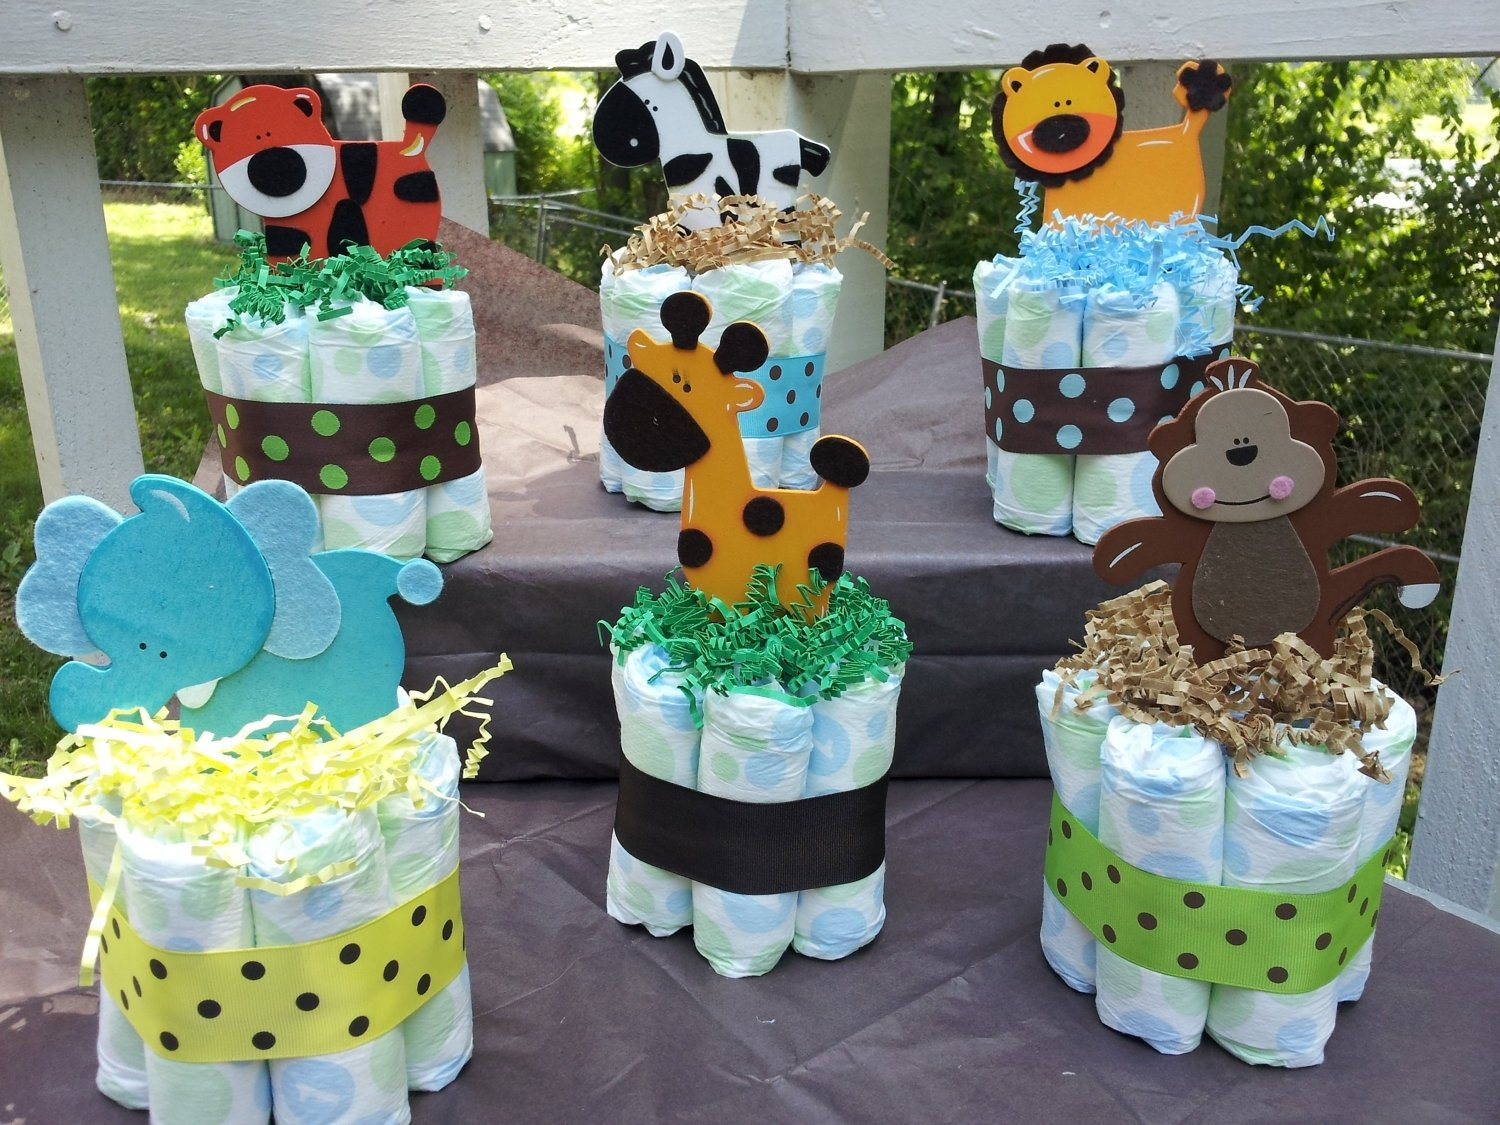 safari baby shower decorations ideas | omega-center - ideas for baby